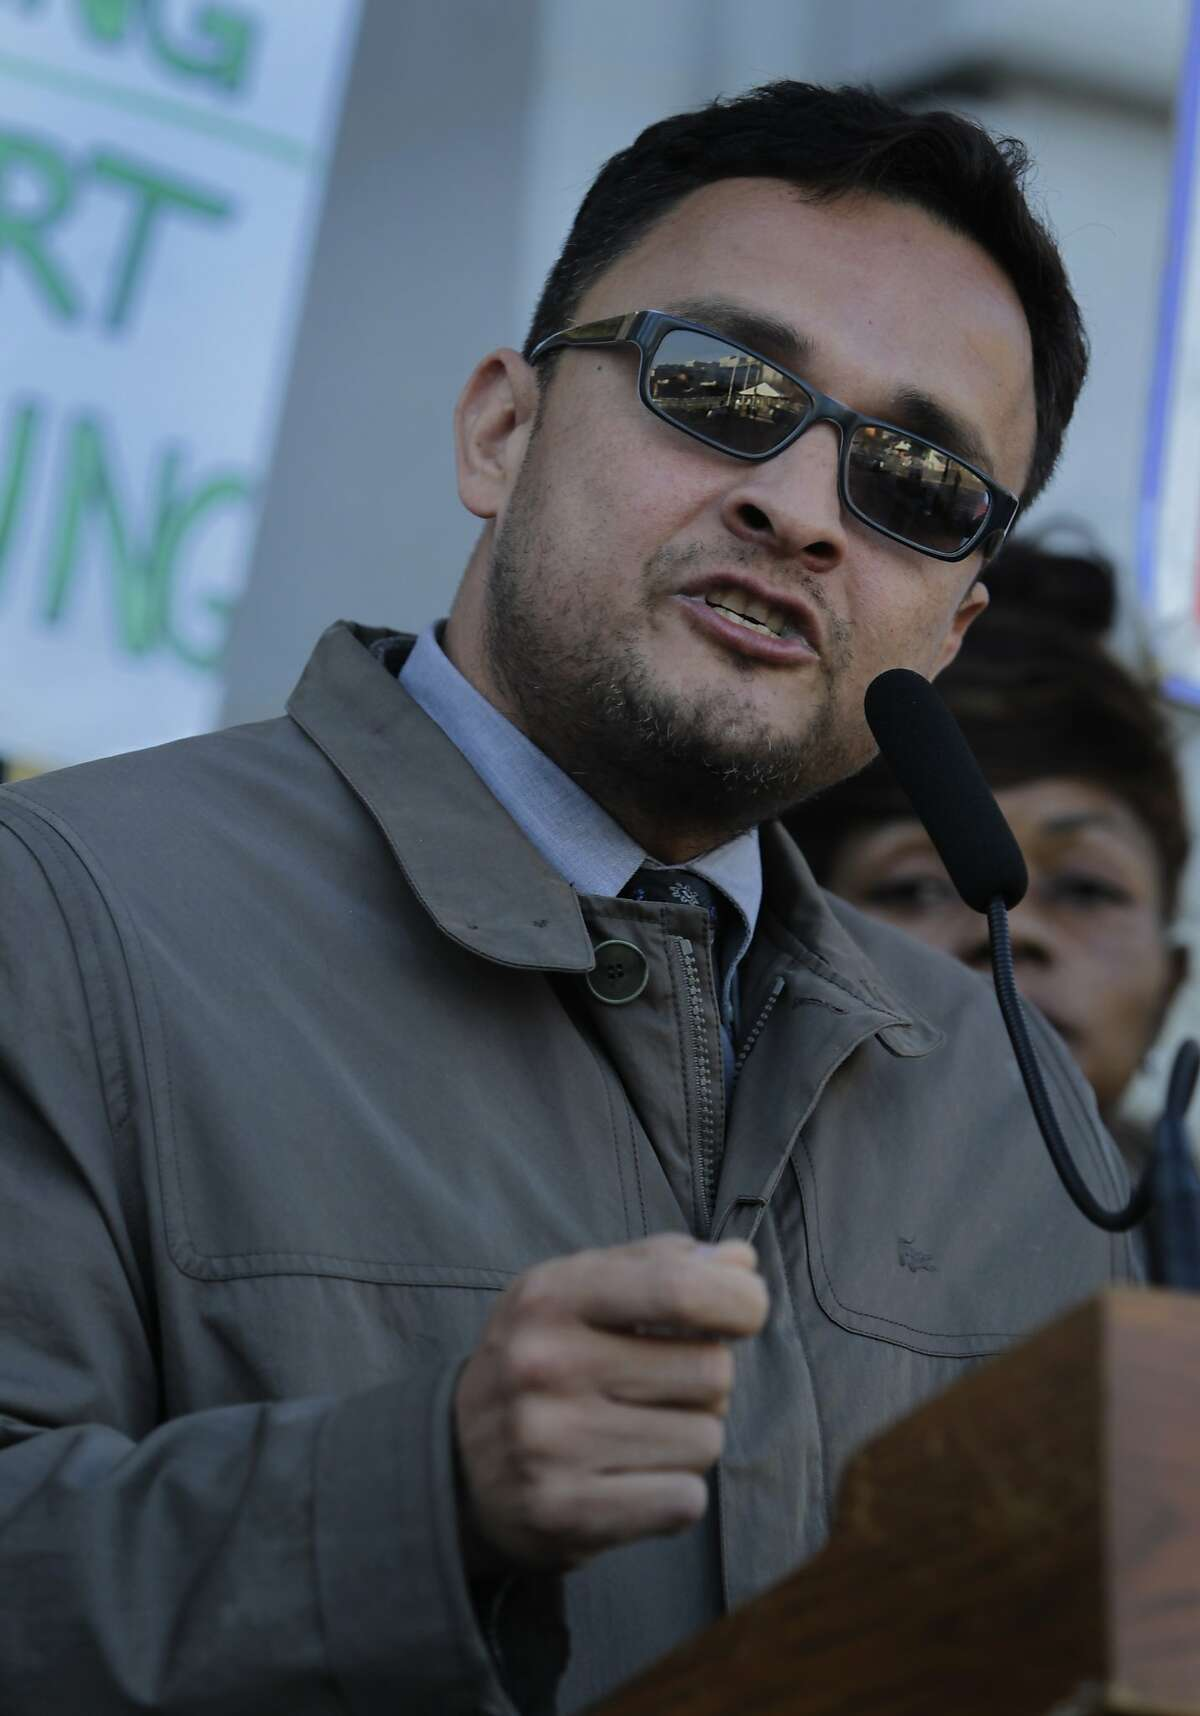 Supervisor David Campos appears at a memorial service to mark the first anniversary of the Sandy Hook Elementary School shooting in San Francisco, Calif. on Friday, Dec. 13, 2013. Campos is running against Supervisor David Chiu for the 17th State Assembly District seat.